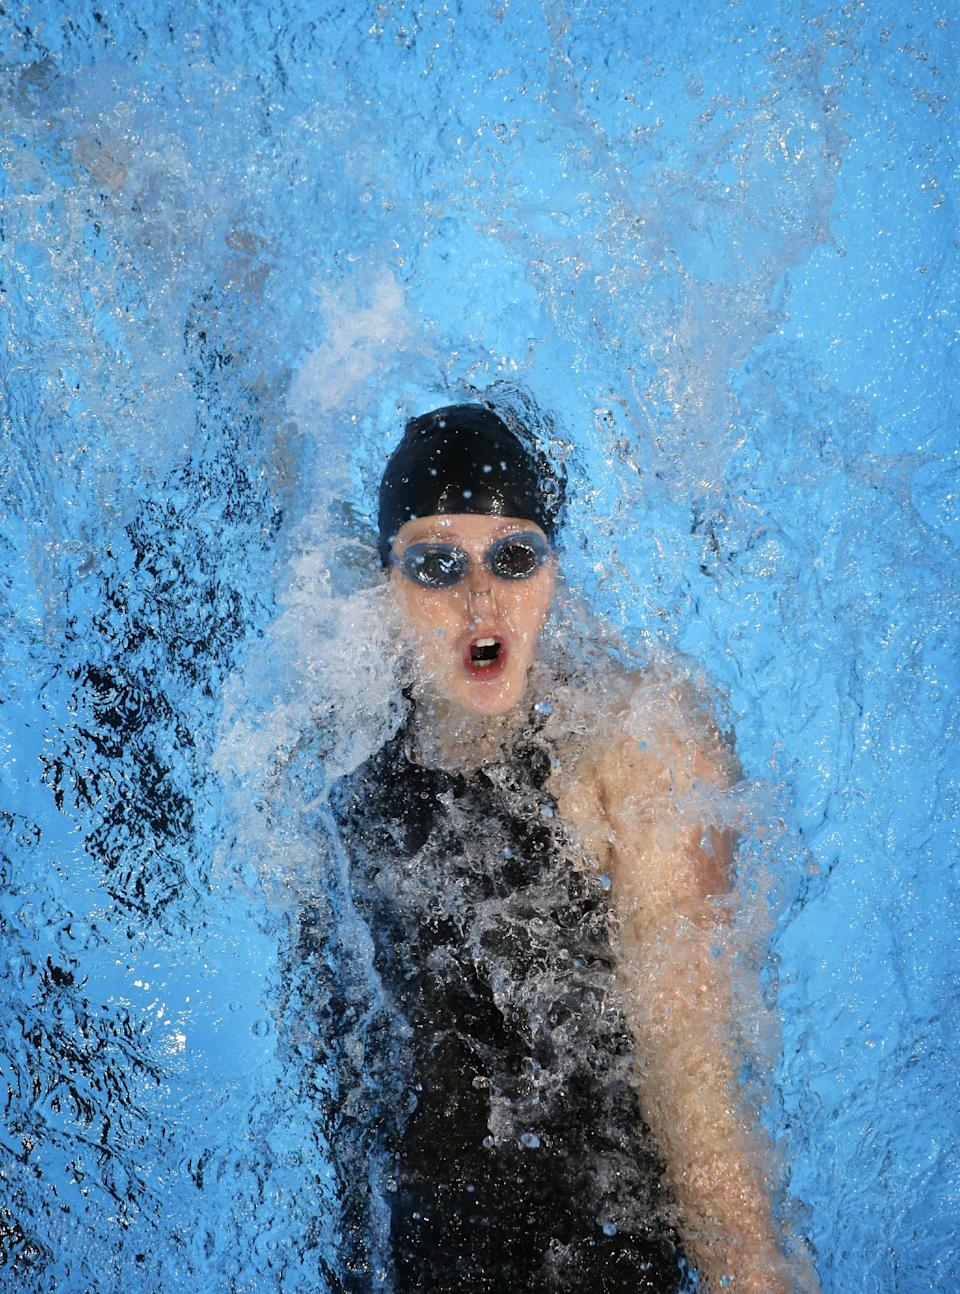 Missy Franklin swims in the women's 100-meter backstroke preliminaries at the U.S. Olympic swimming trials, Tuesday, June 26, 2012, in Omaha, Neb. (AP Photo/Mark Humphrey)